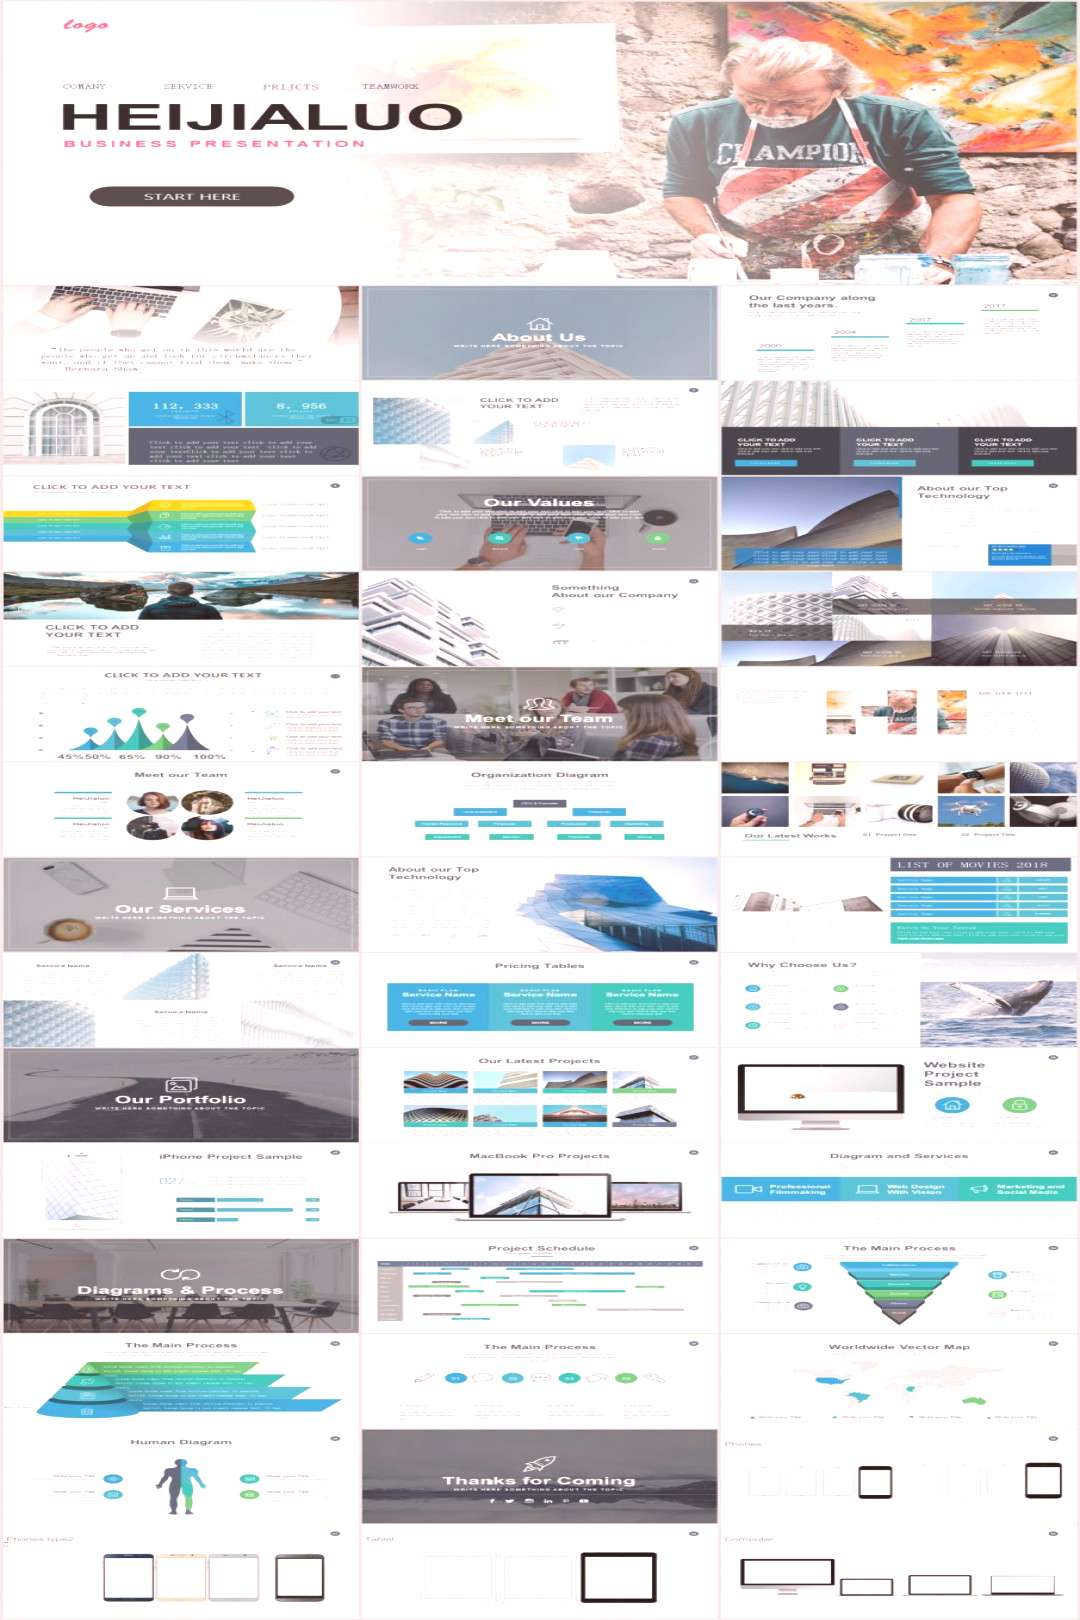 39+ Best mobile business Plan PowerPoint template – The highest quality PowerPoint Templates and